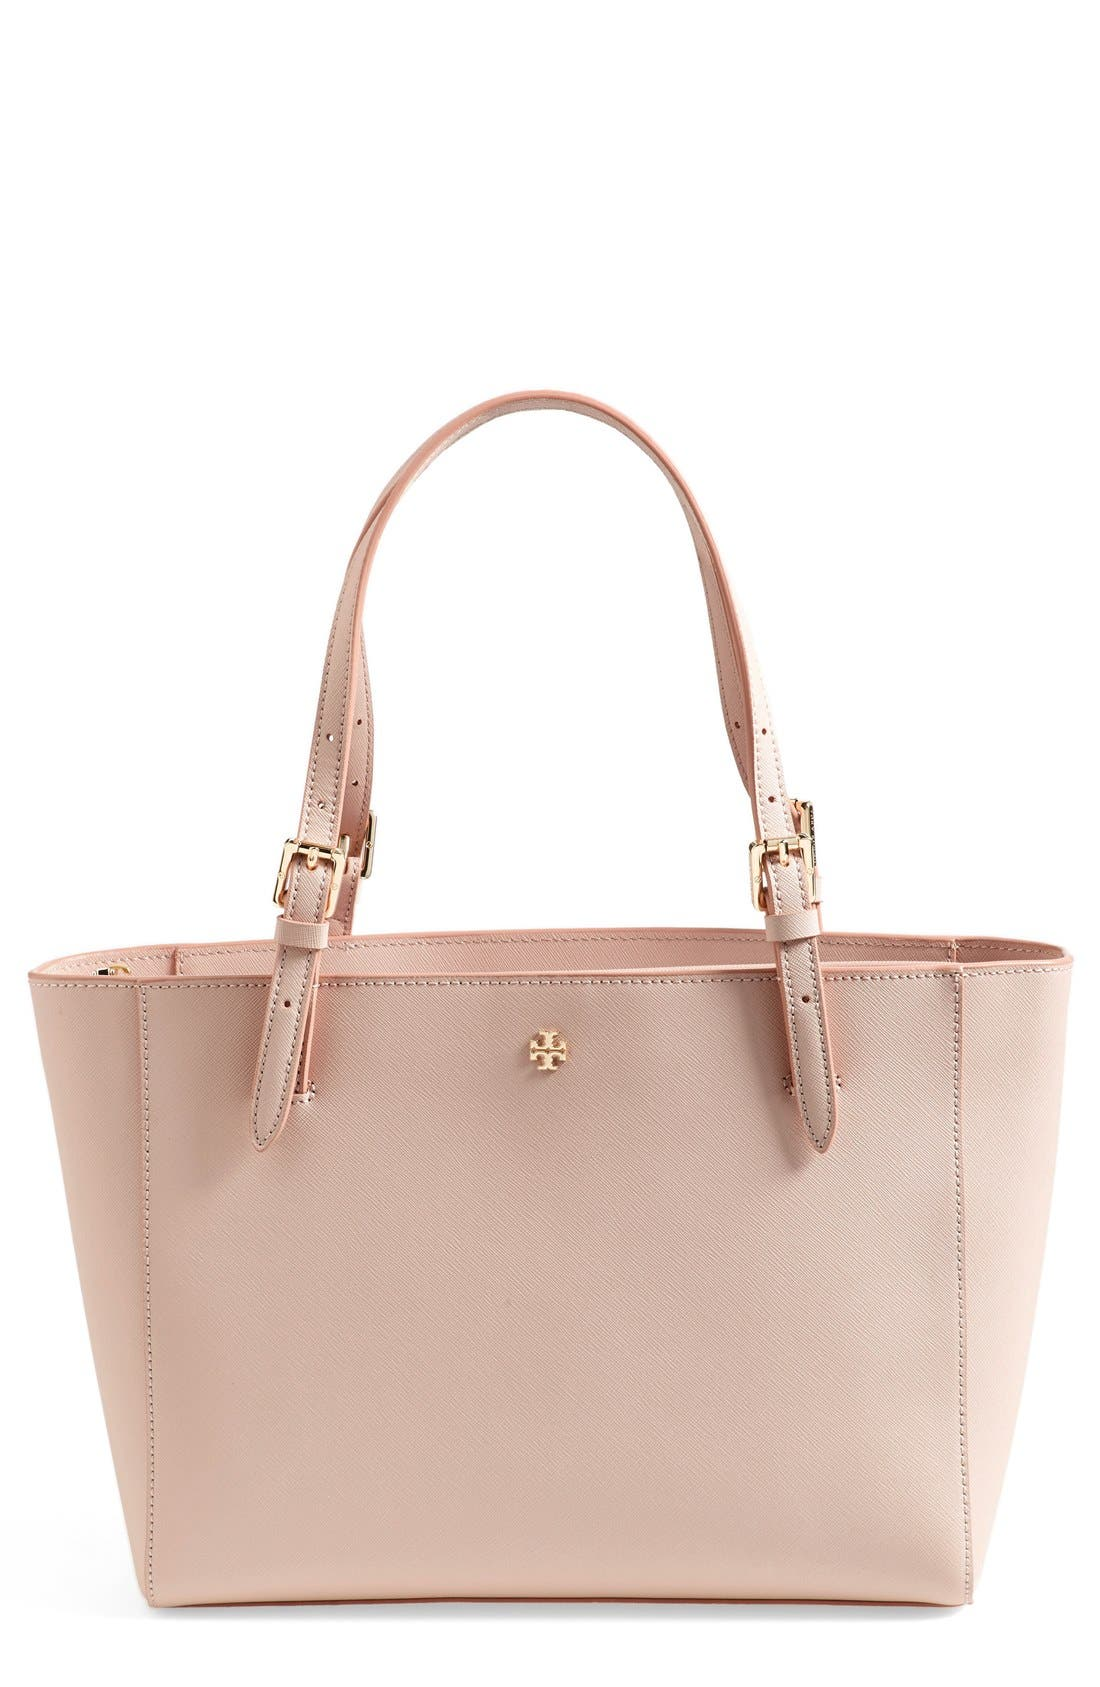 'Small York' Saffiano Leather Buckle Tote,                             Main thumbnail 7, color,